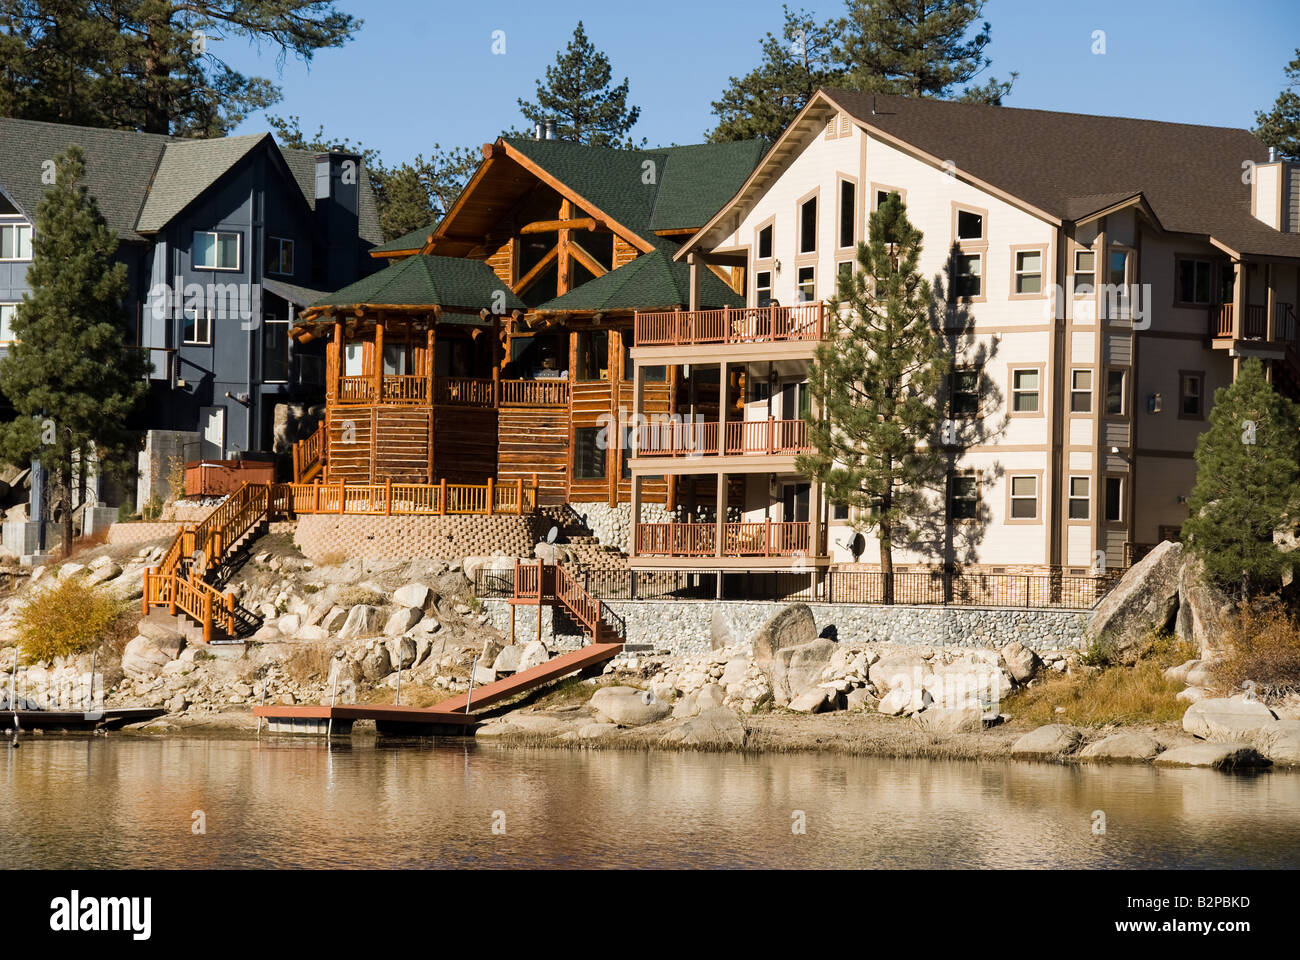 big hotel image for this sale of rentals bear property in resort town us com gallery booking lake cabins ca